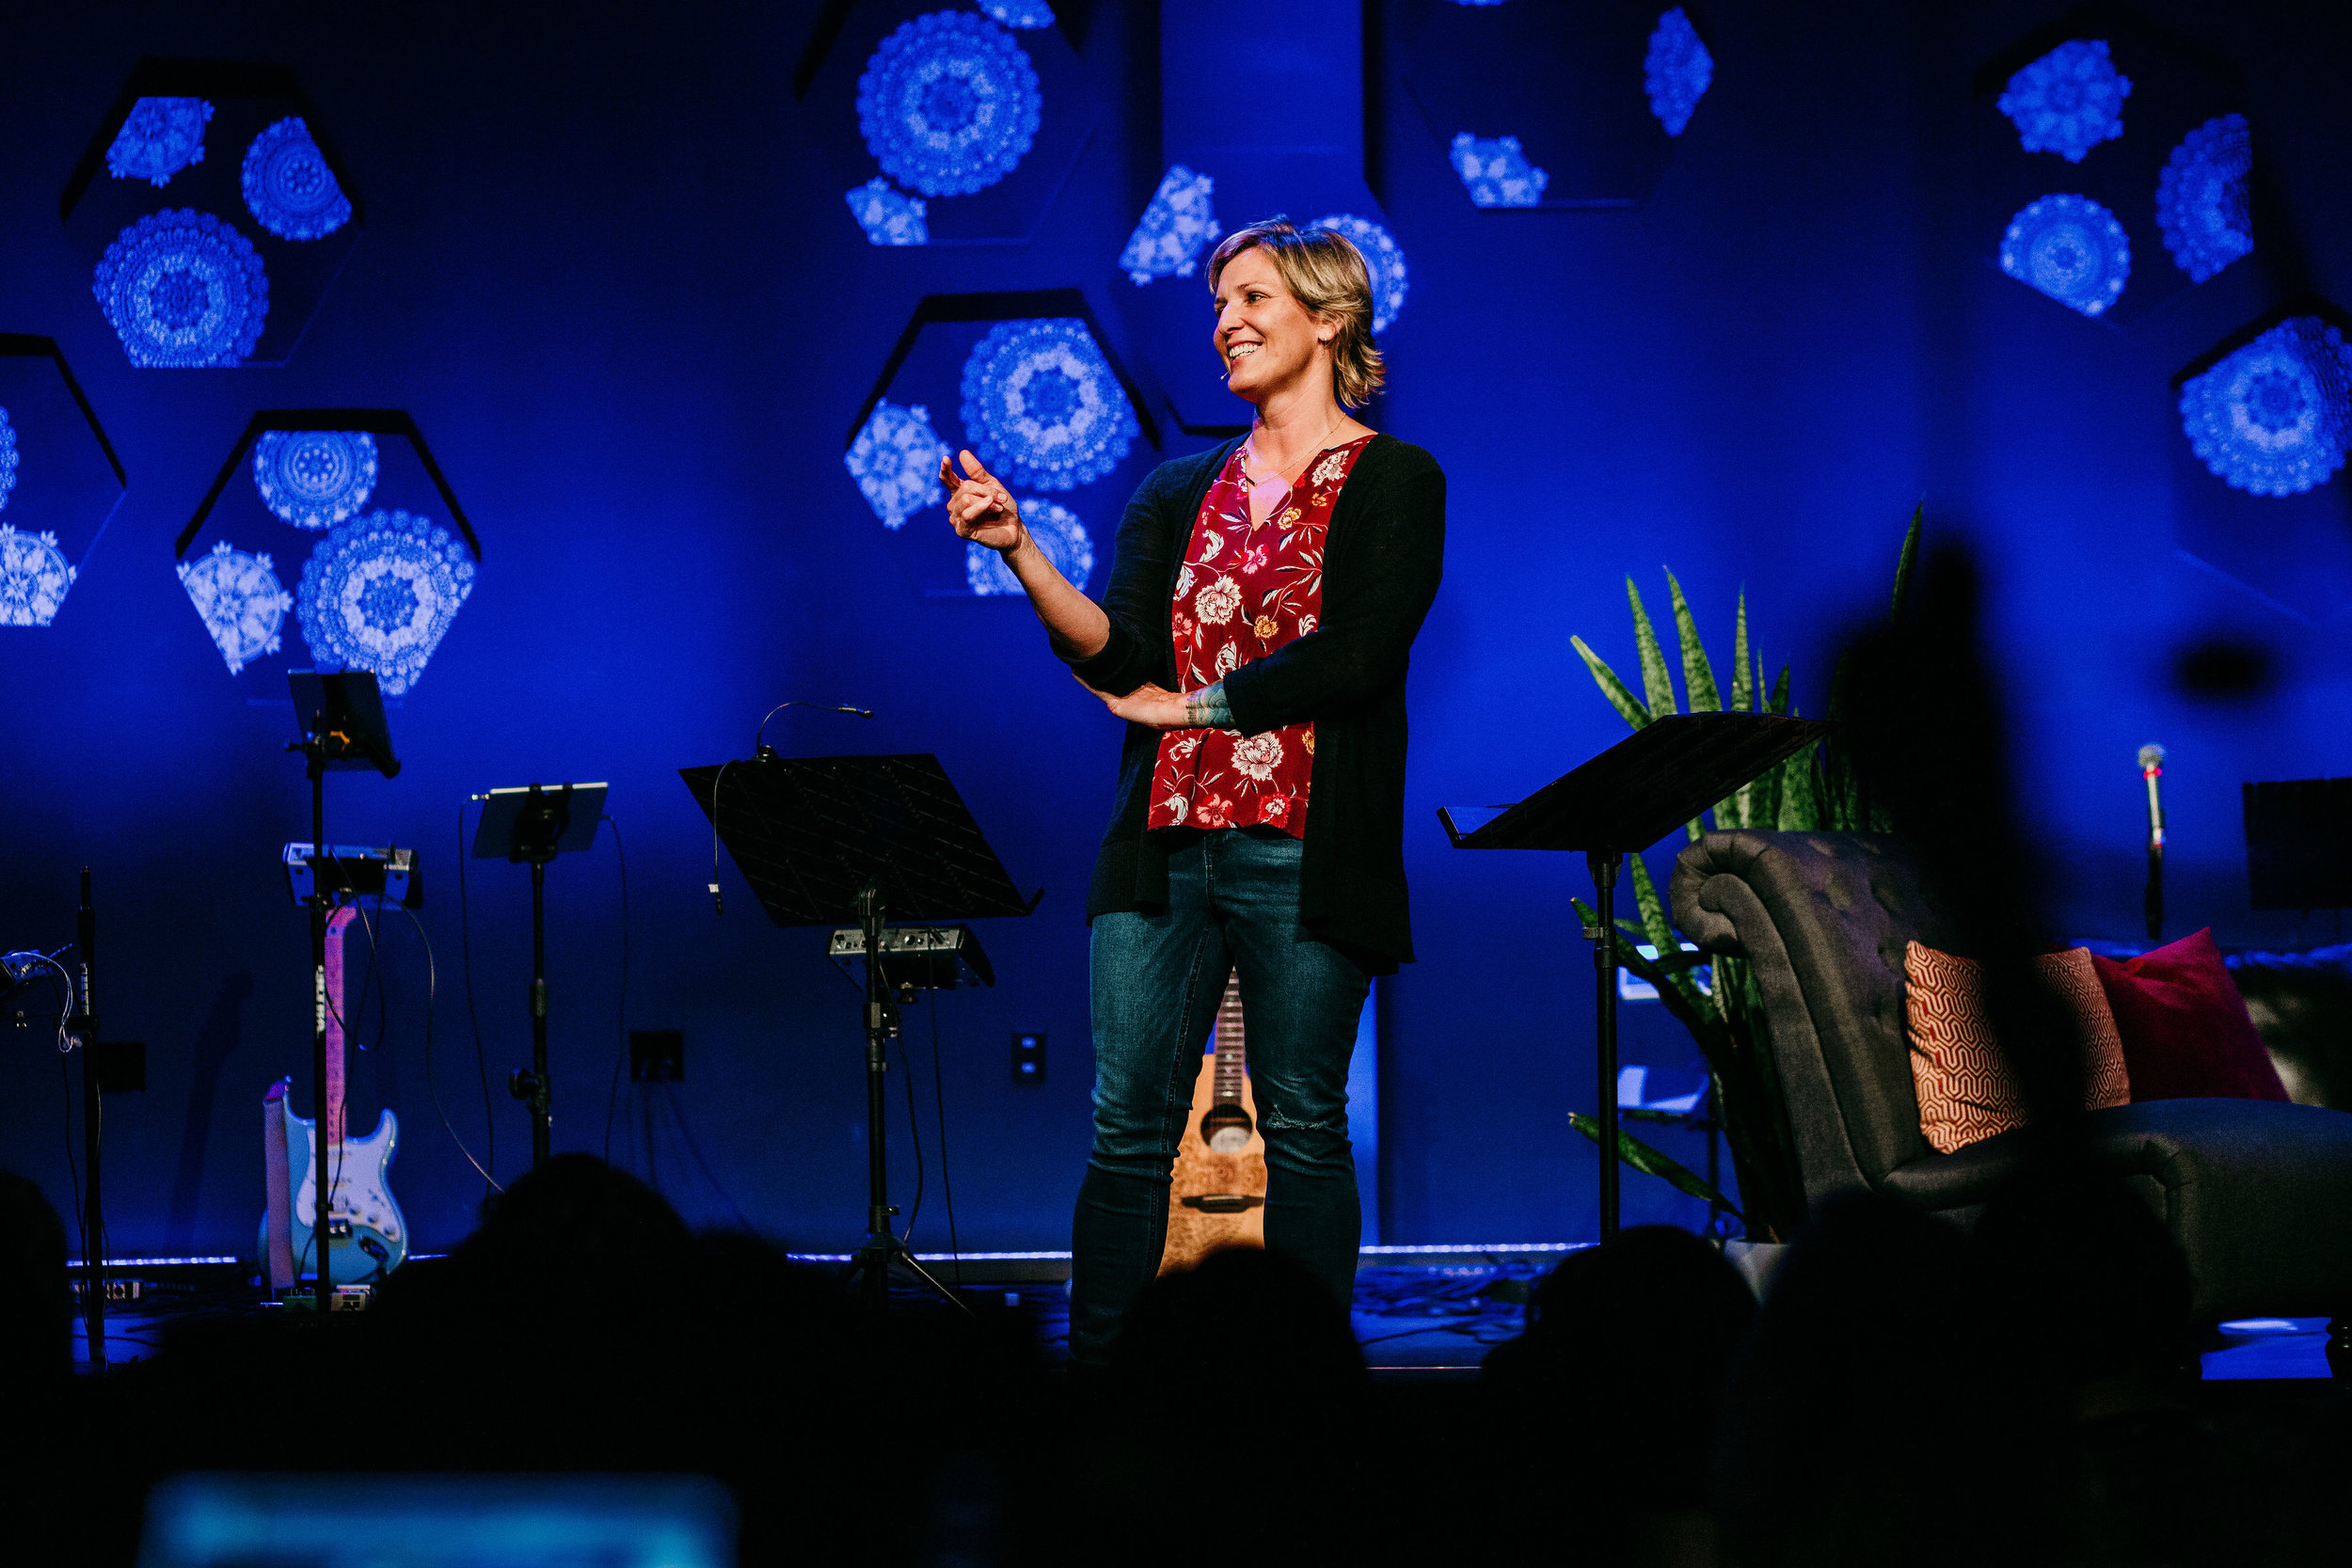 Main Sessions - Main Sessions are full of incredible and moving worship, local and national speakers, and an opportunity to dive deeper into what God is saying to you, personally.